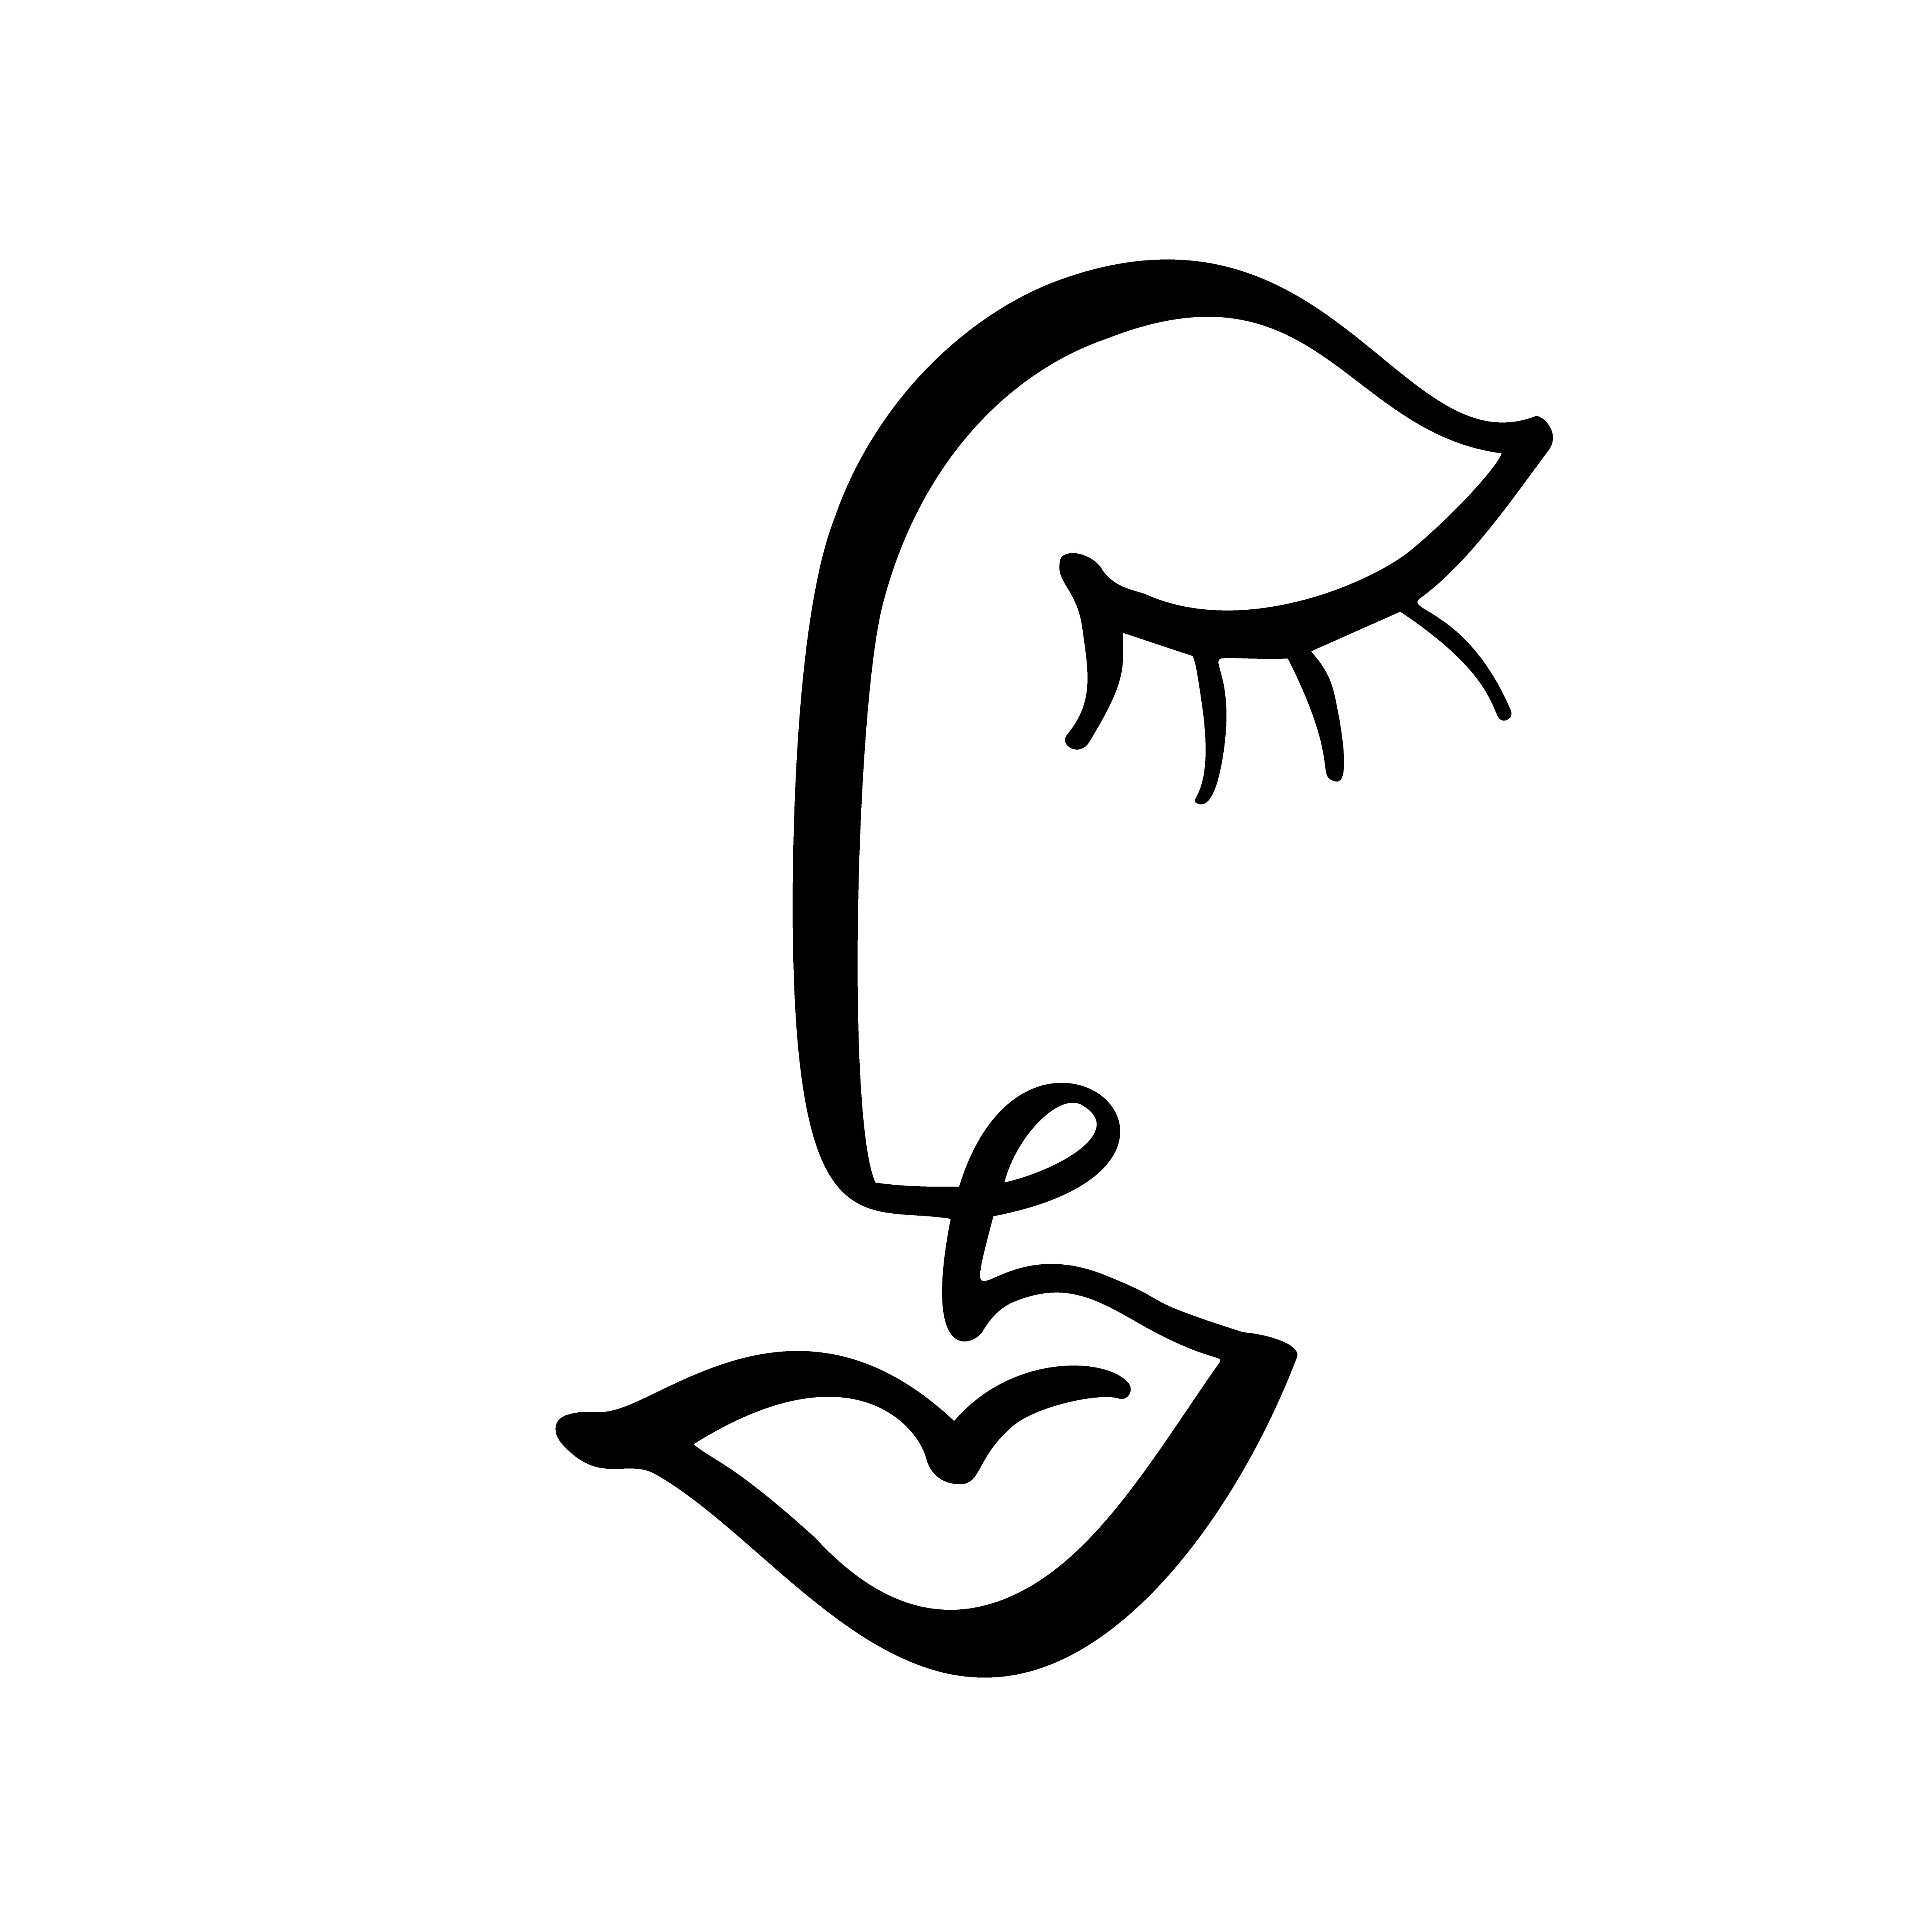 Continuous Line Drawing Of Woman Face Fashion Minimalist